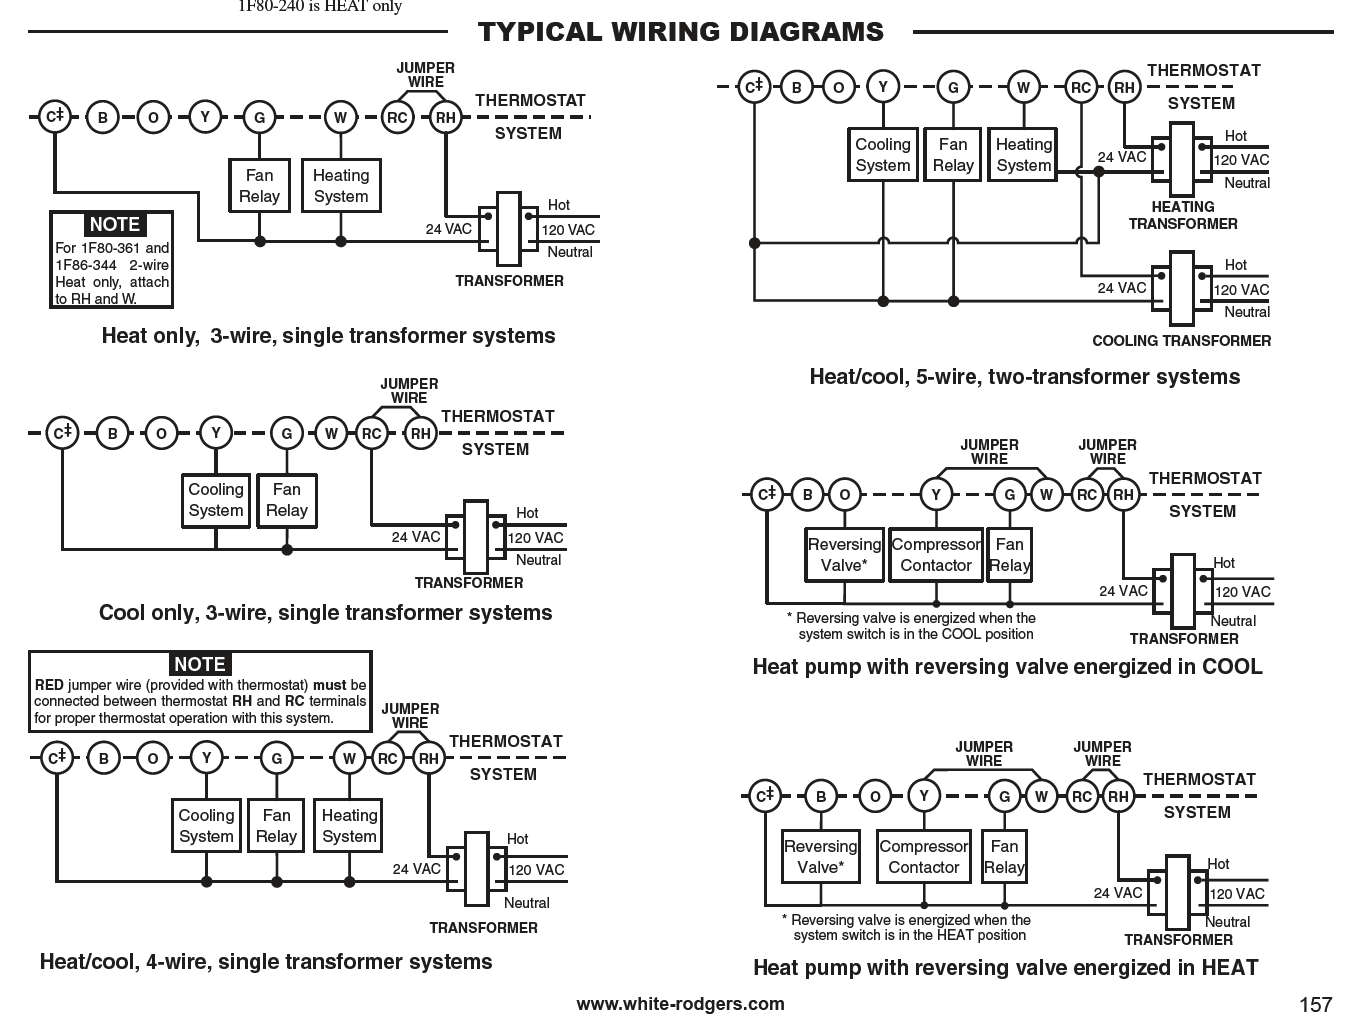 room stat wiring diagram squirrel anatomy how wire a white rodgers thermostat emerson 1f80 series thermostats typical diagrams at inspectapedia com cited in detail